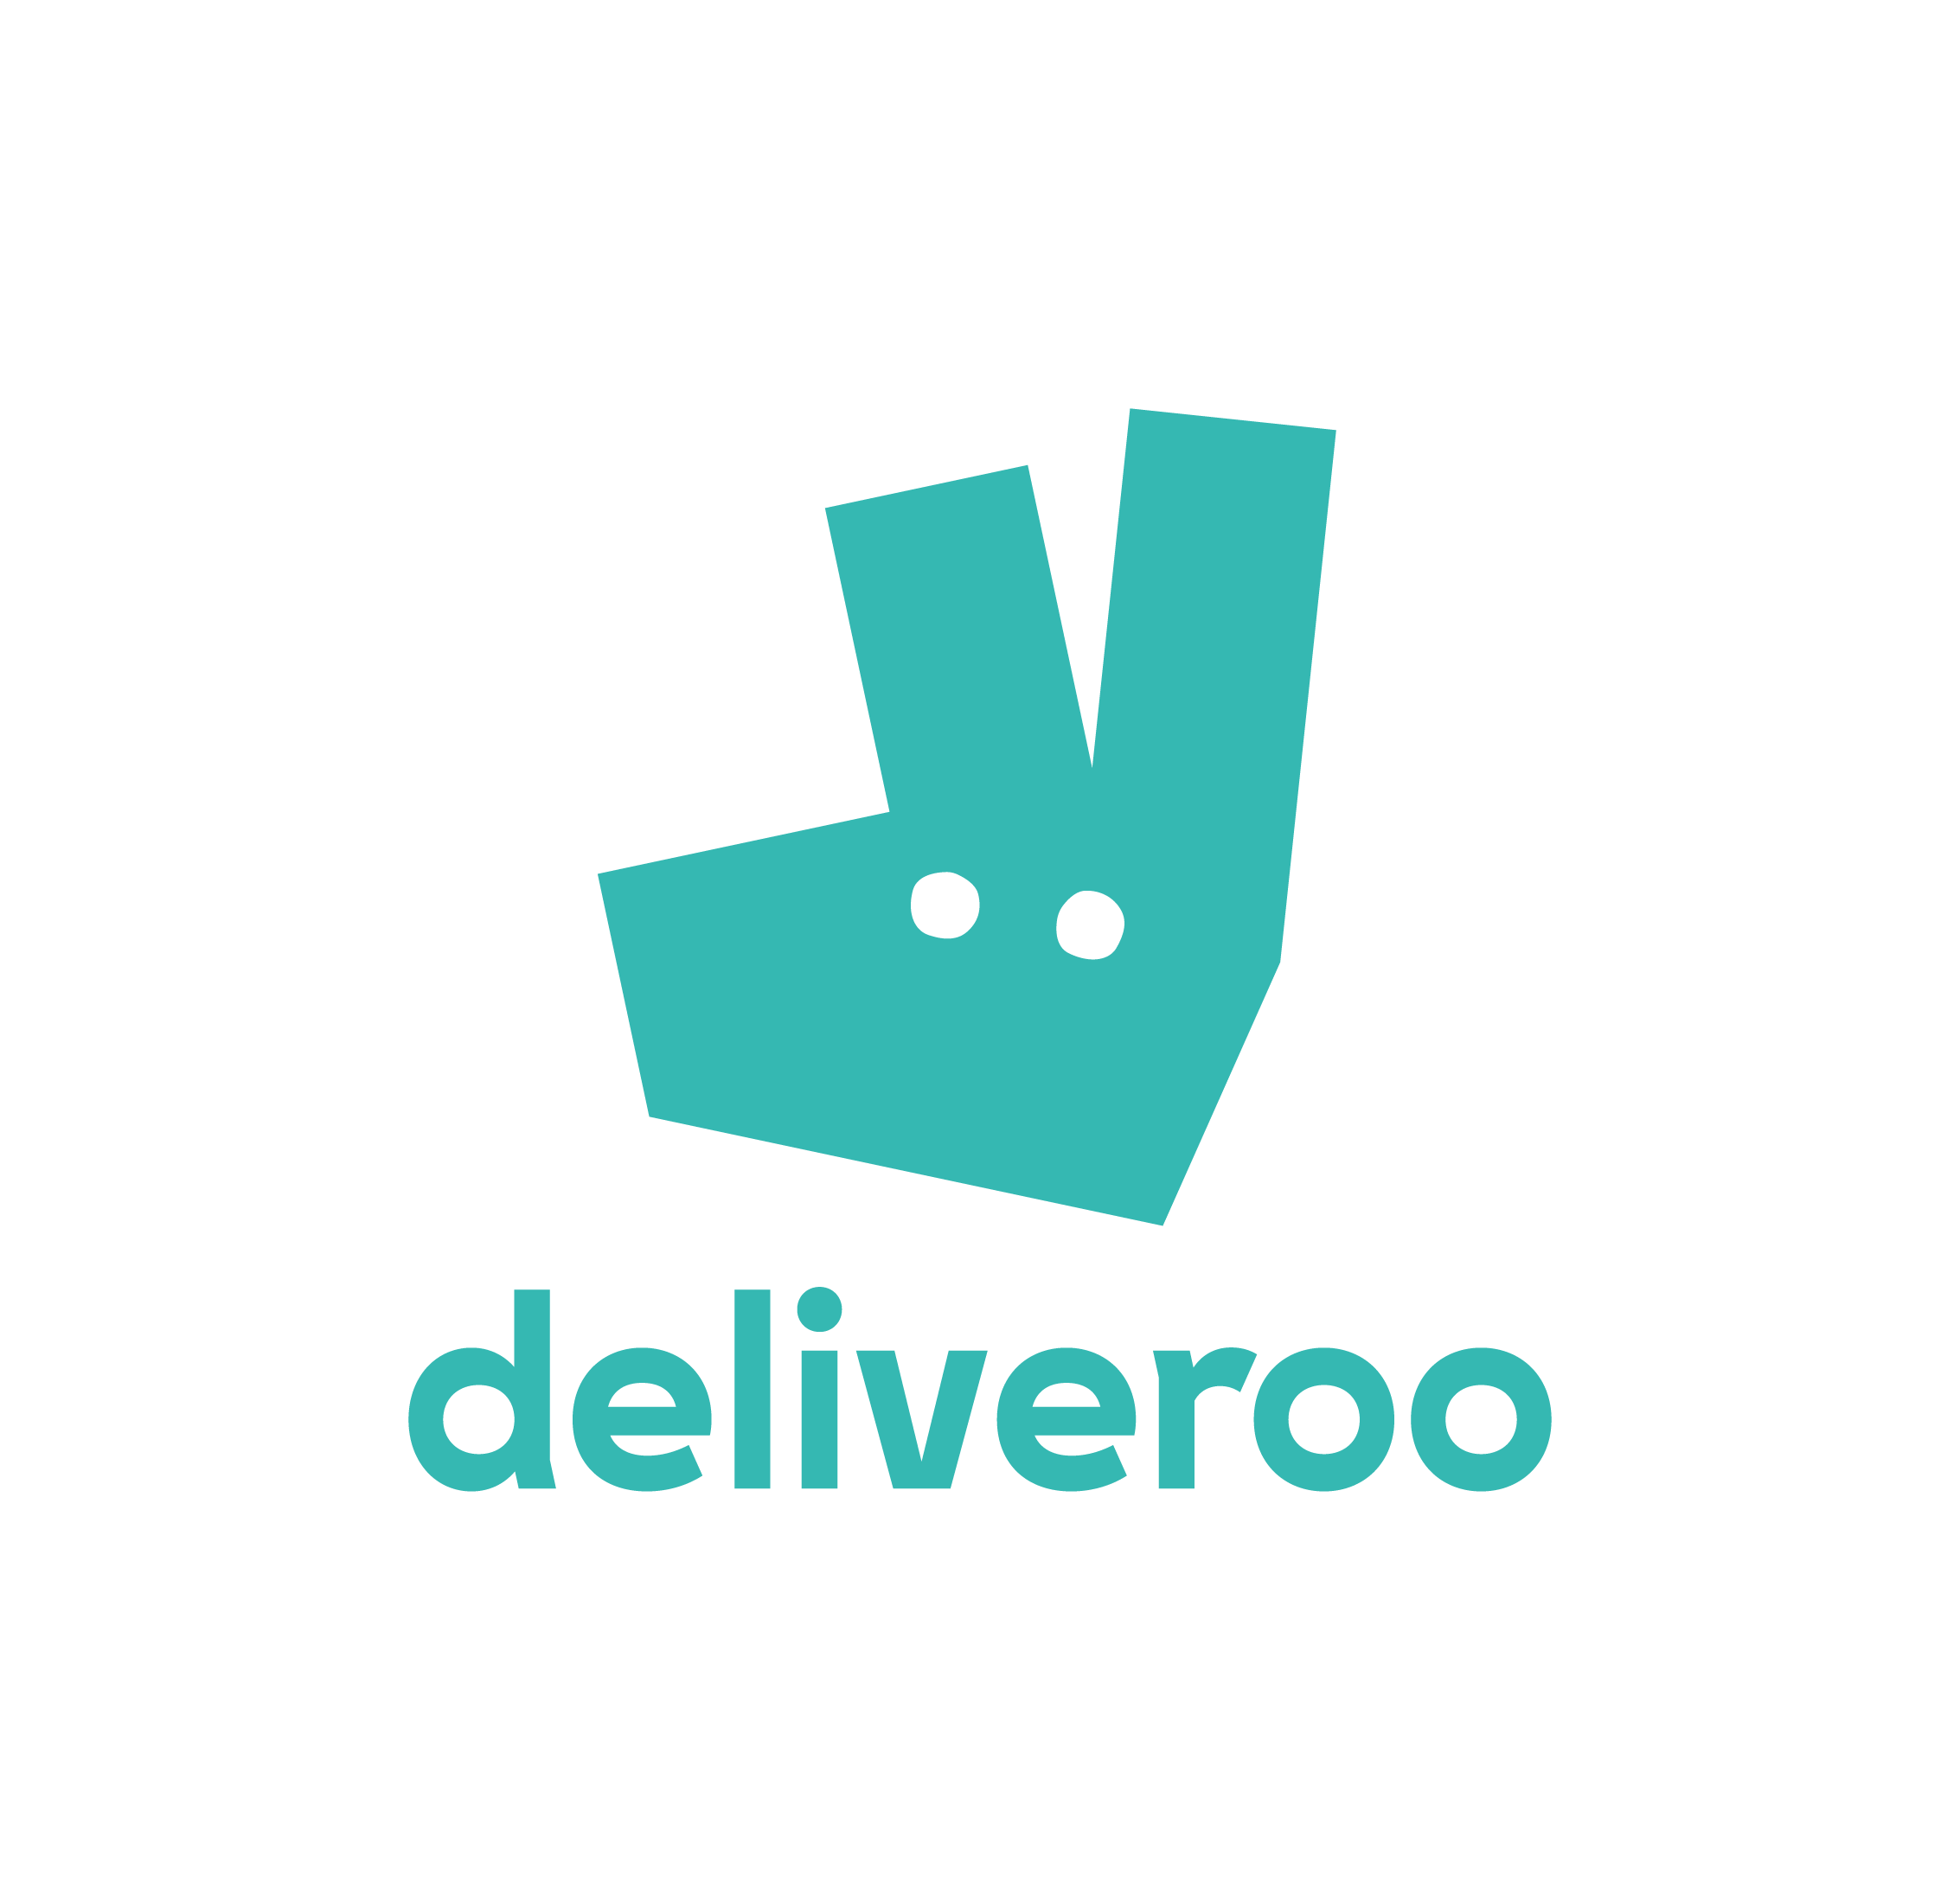 Deliveroo unveils new kangaroo as part of rebrand | Design Week